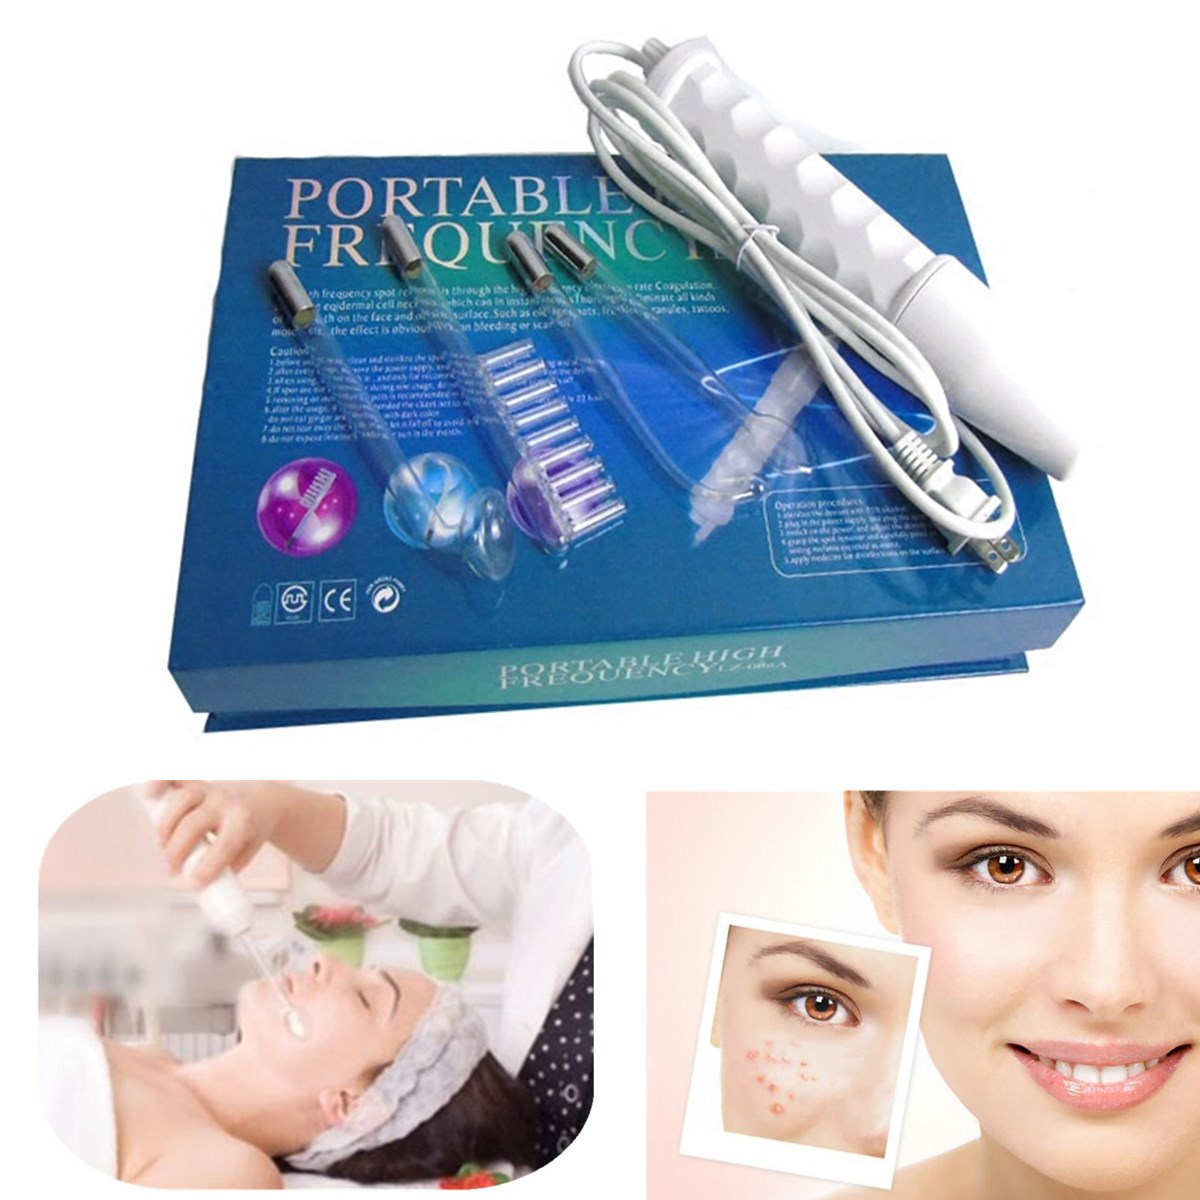 Portable Handheld High Frequency Skin Tightening Acne Spot Scar Fine Lines Remover Device Beauty Machine Facial Skin Care ToolPortable Handheld High Frequency Skin Tightening Acne Spot Scar Fine Lines Remover Device Beauty Machine Facial Skin Care Tool